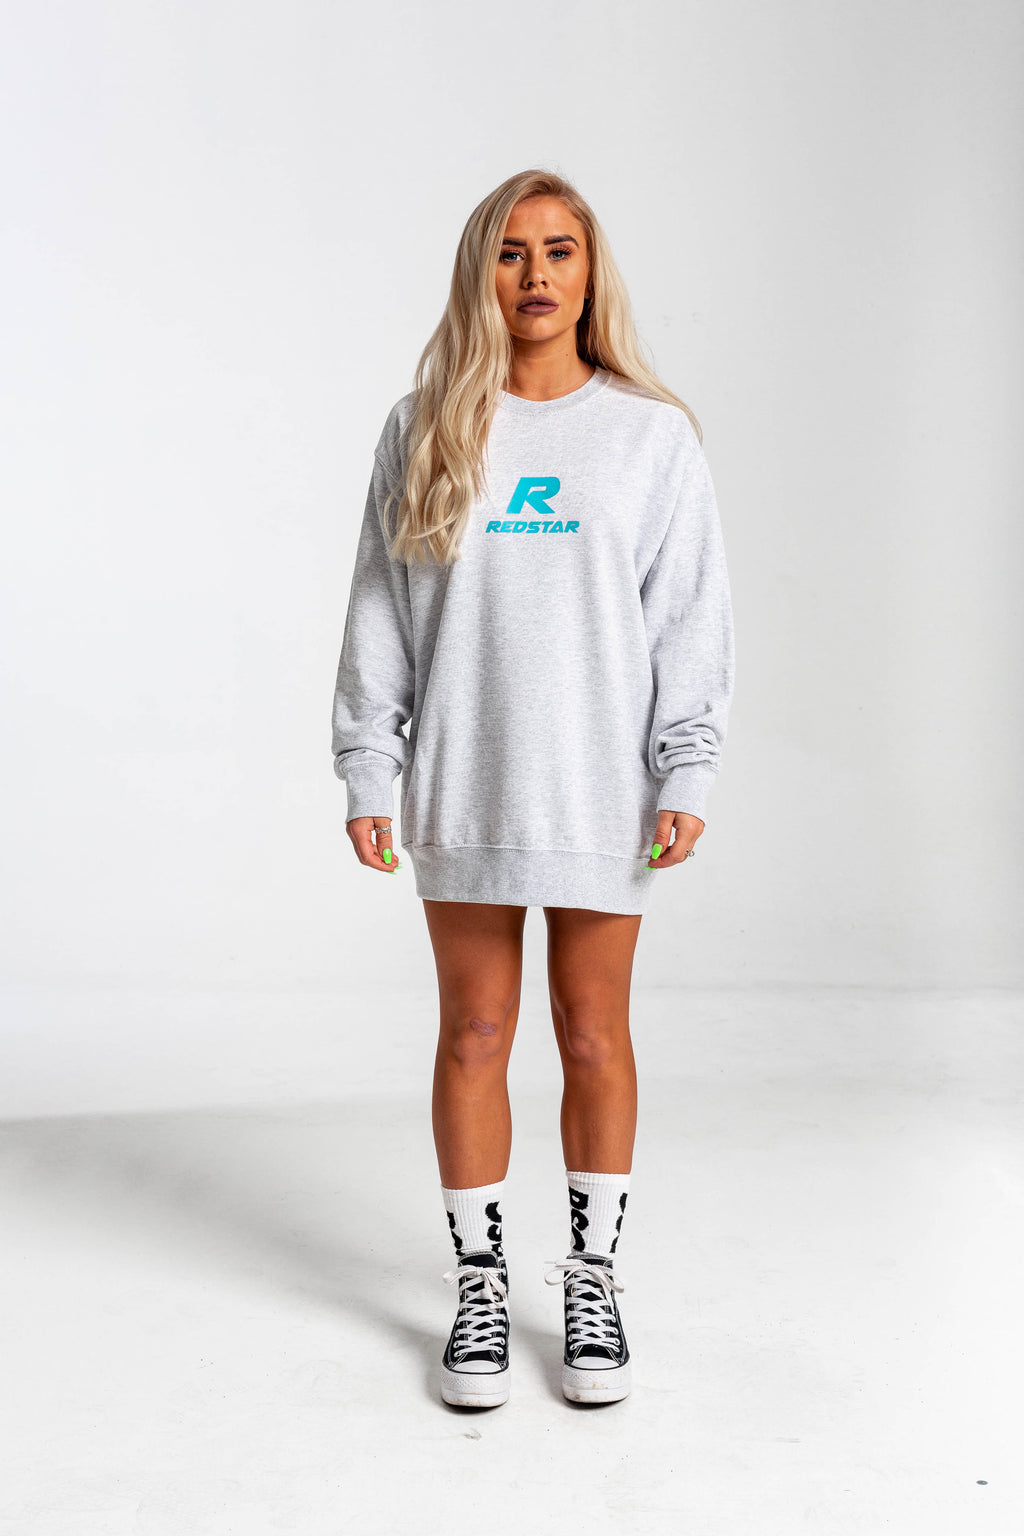 RSC Console R Grey Sweater - Front & Back Embroidery